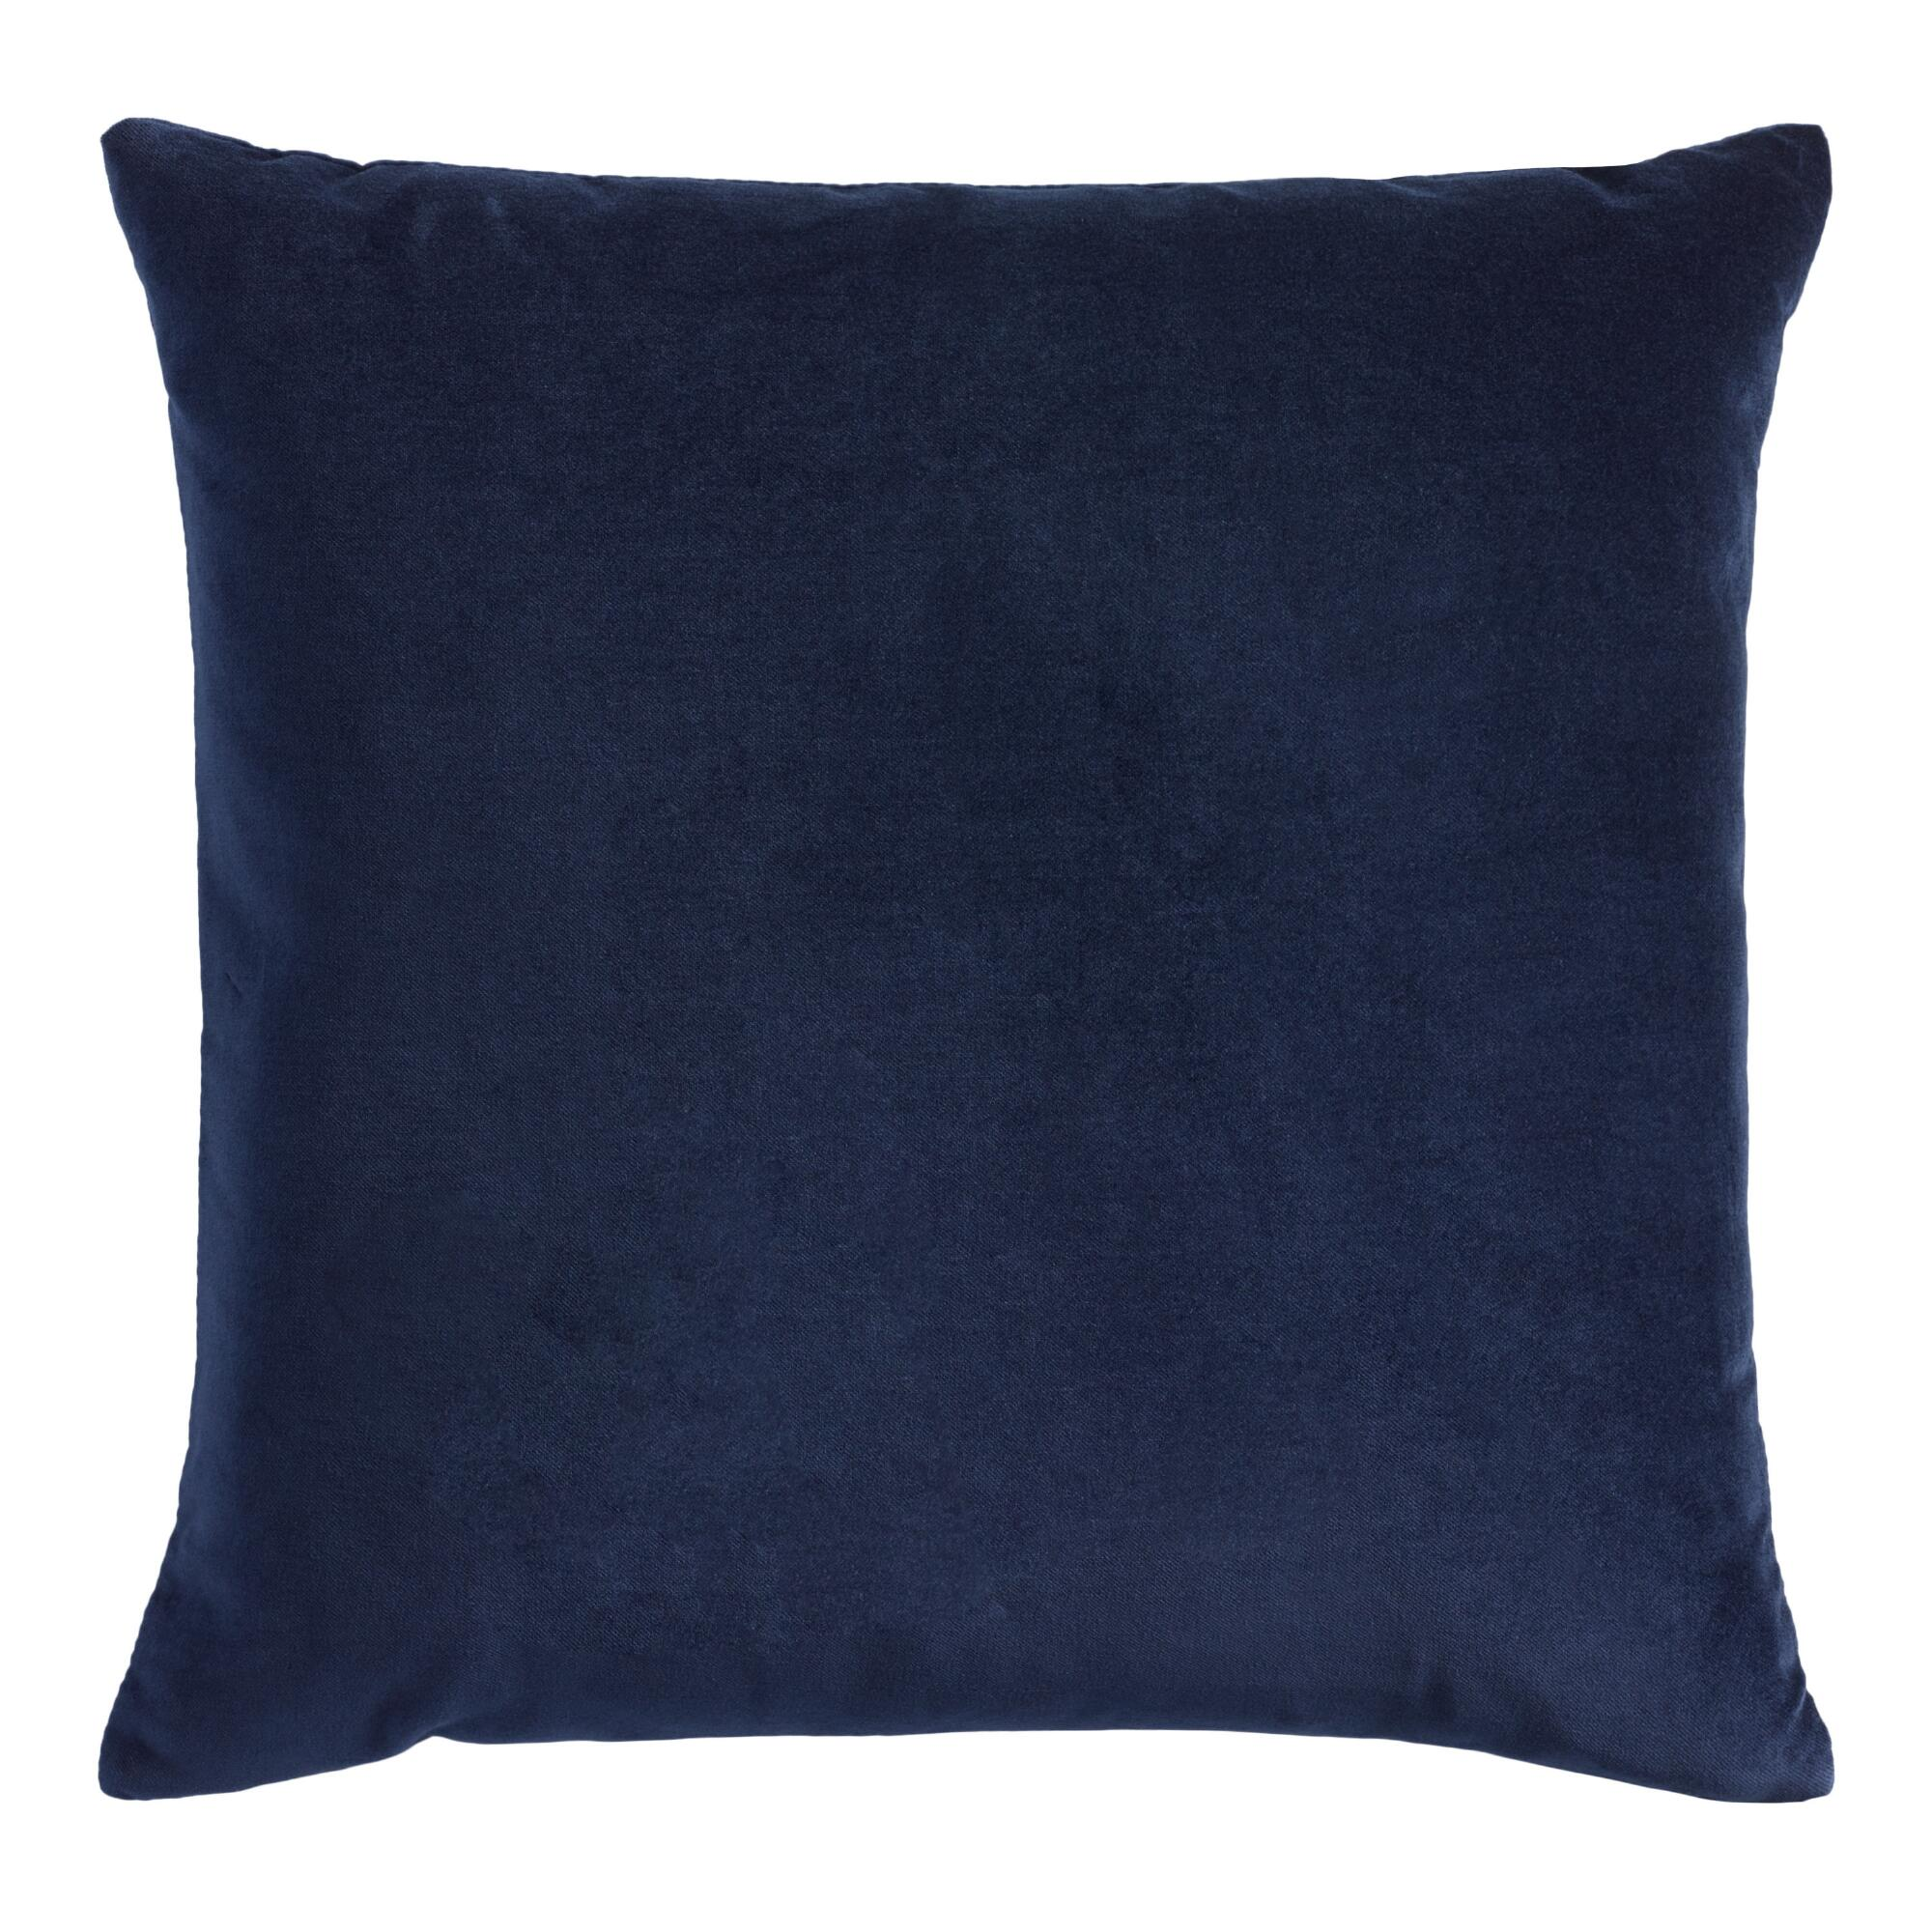 Throw Pillows Velvet : Navy Blue Velvet Throw Pillow World Market